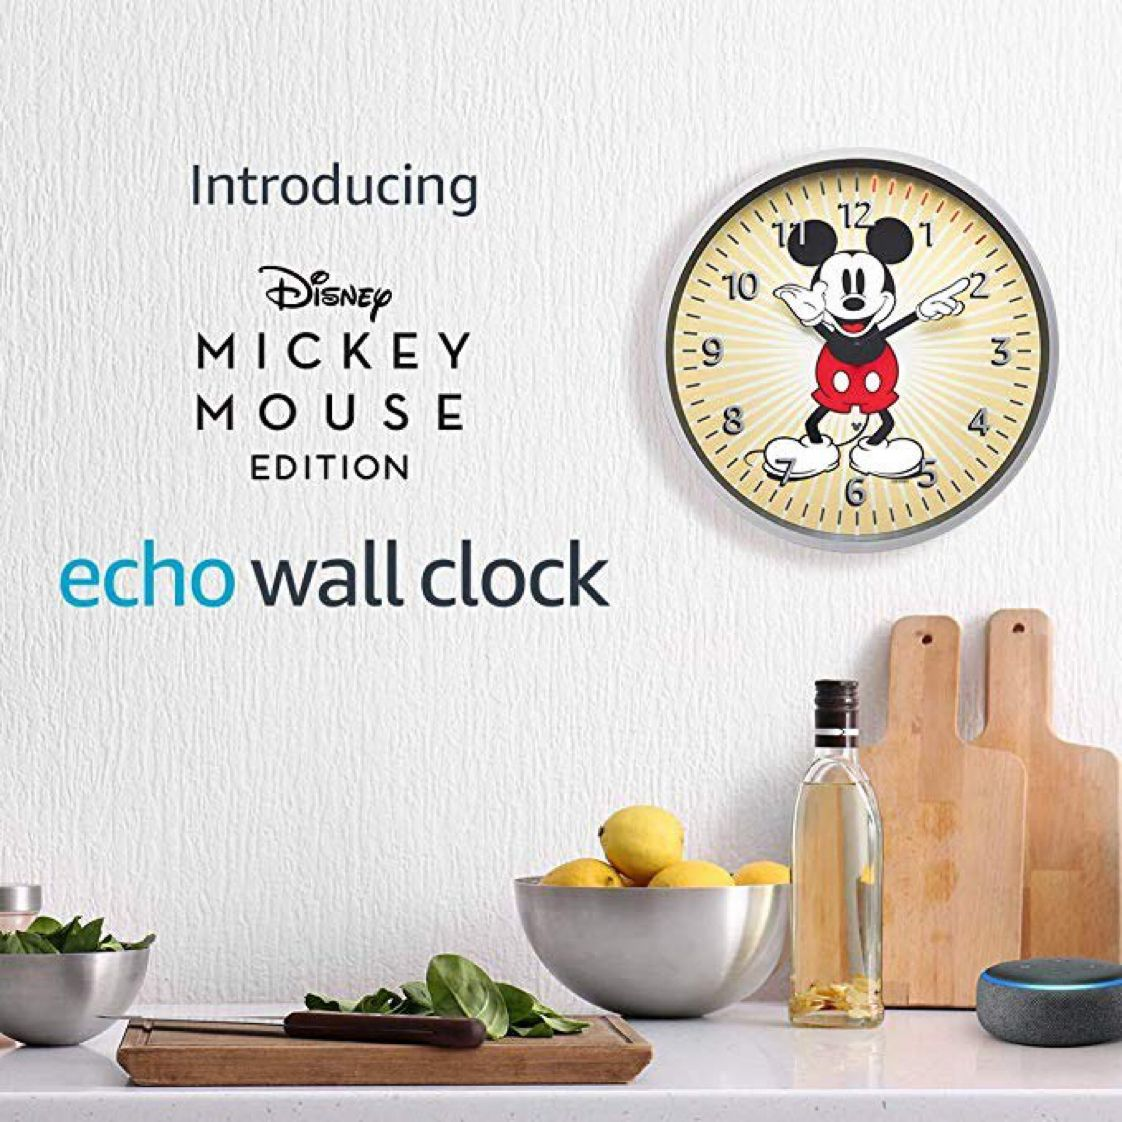 Echo Wall Clock - Disney Mickey Mouse Edition - see timers at a glance   $37.49 with Free Prime Shipping   #steals #deals #stealsanddeals